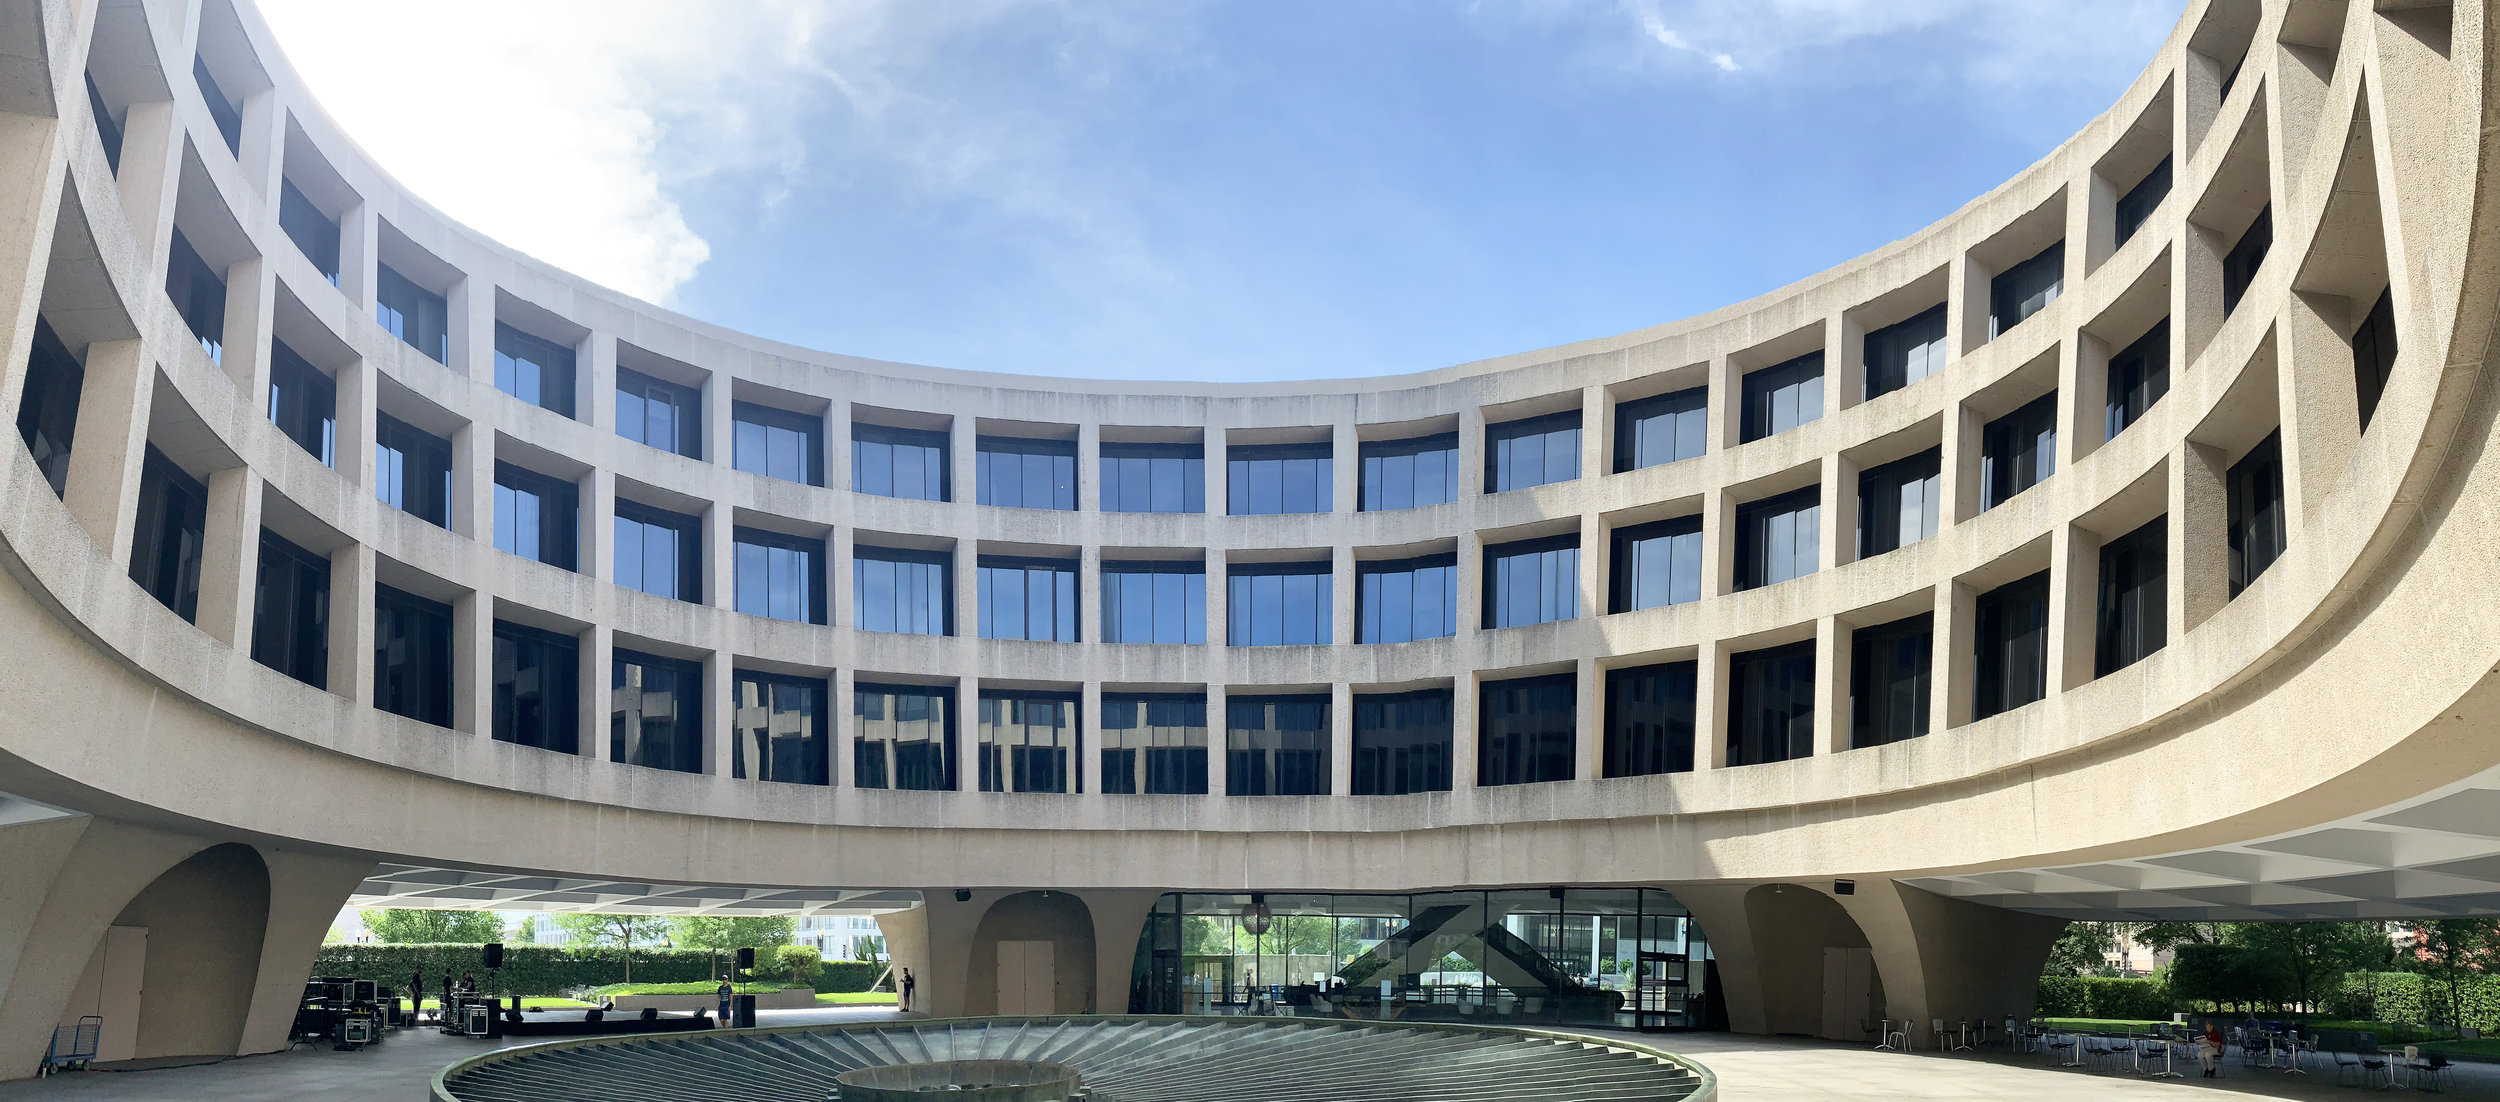 Panorama in the central courtyard of the Hirshhorn Museum